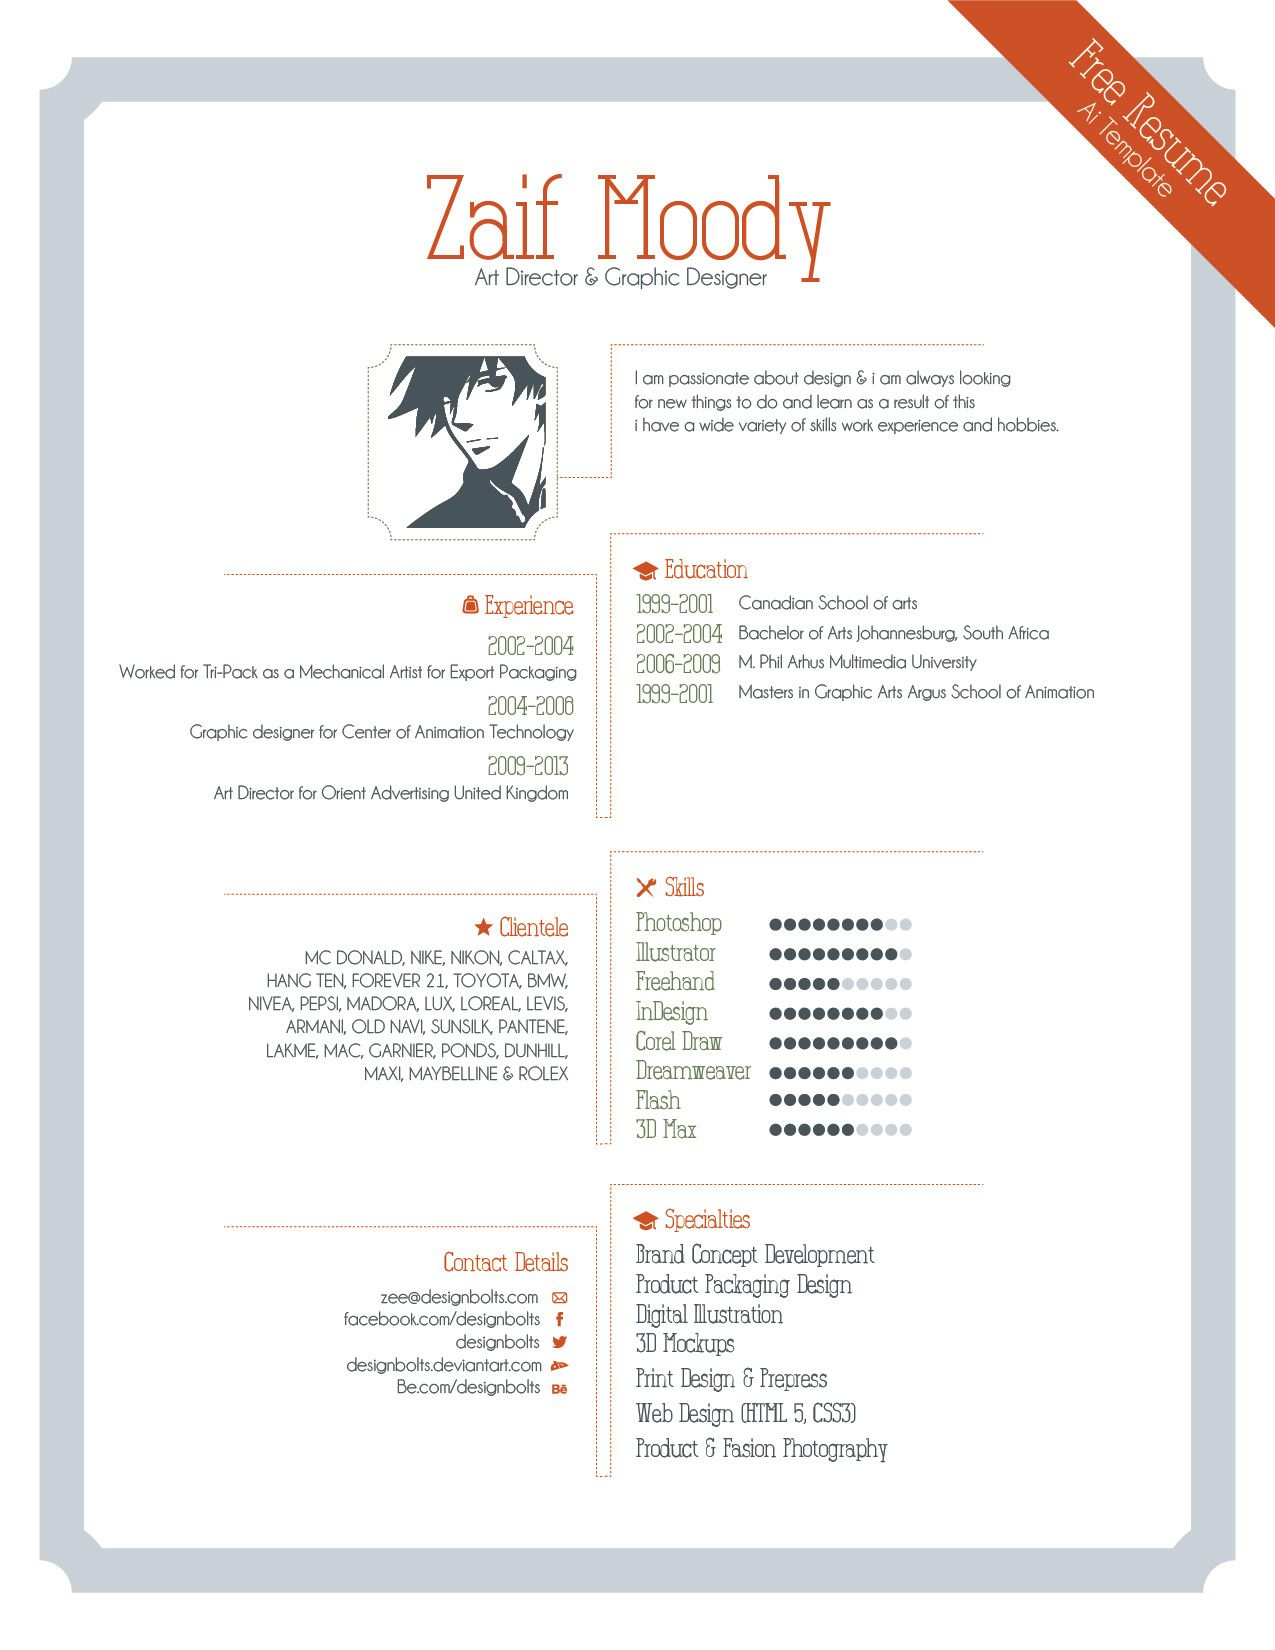 graphic resume 5 1275x1650 border? | GRAPHIC DESIGN // LAYOUT ...